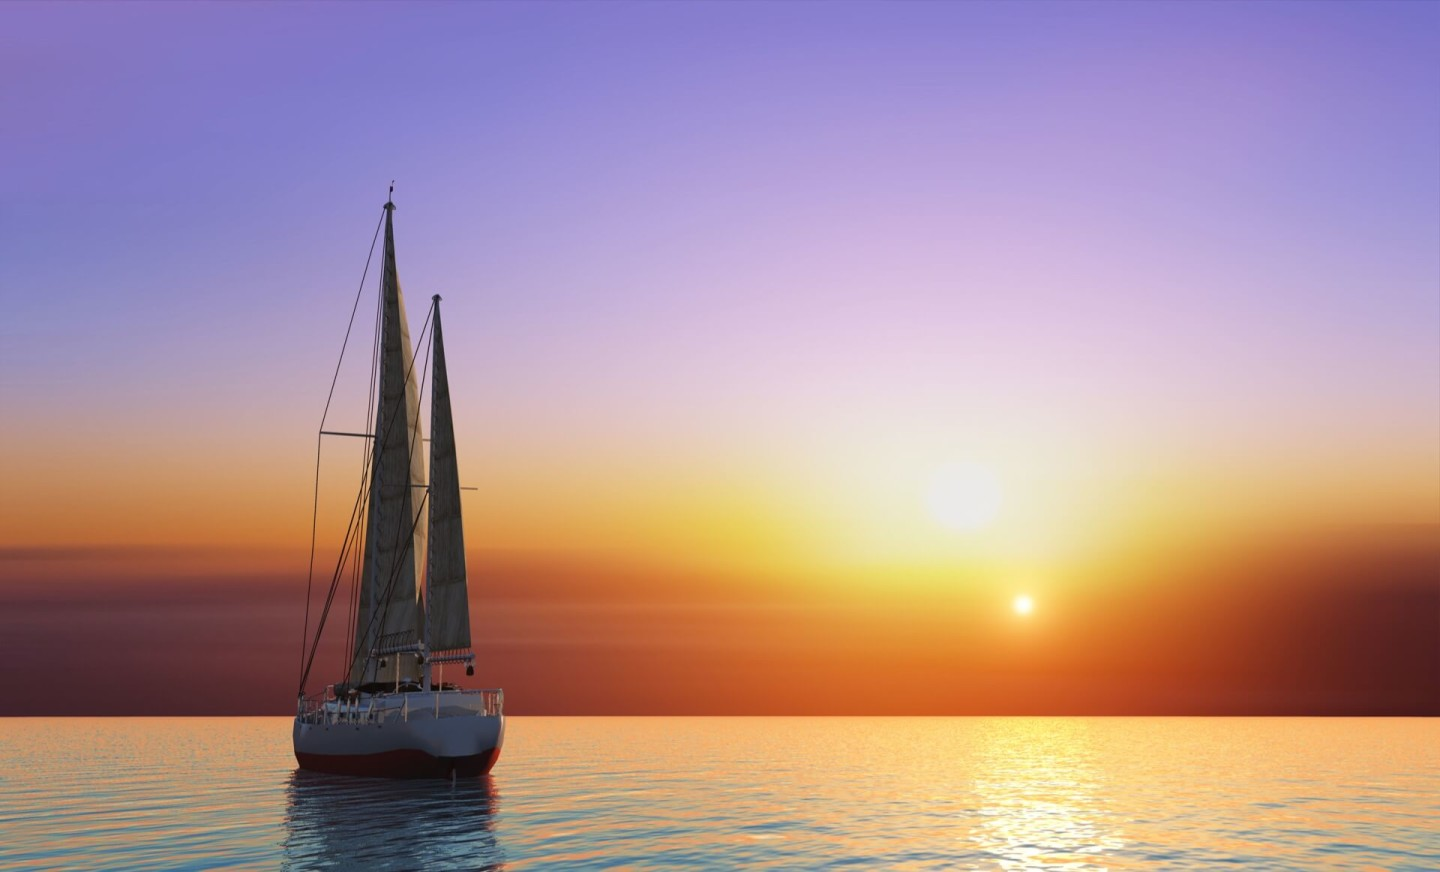 sailaway in the perfect sunset lovely sights summer vibes flexible charter and daily overnight stays